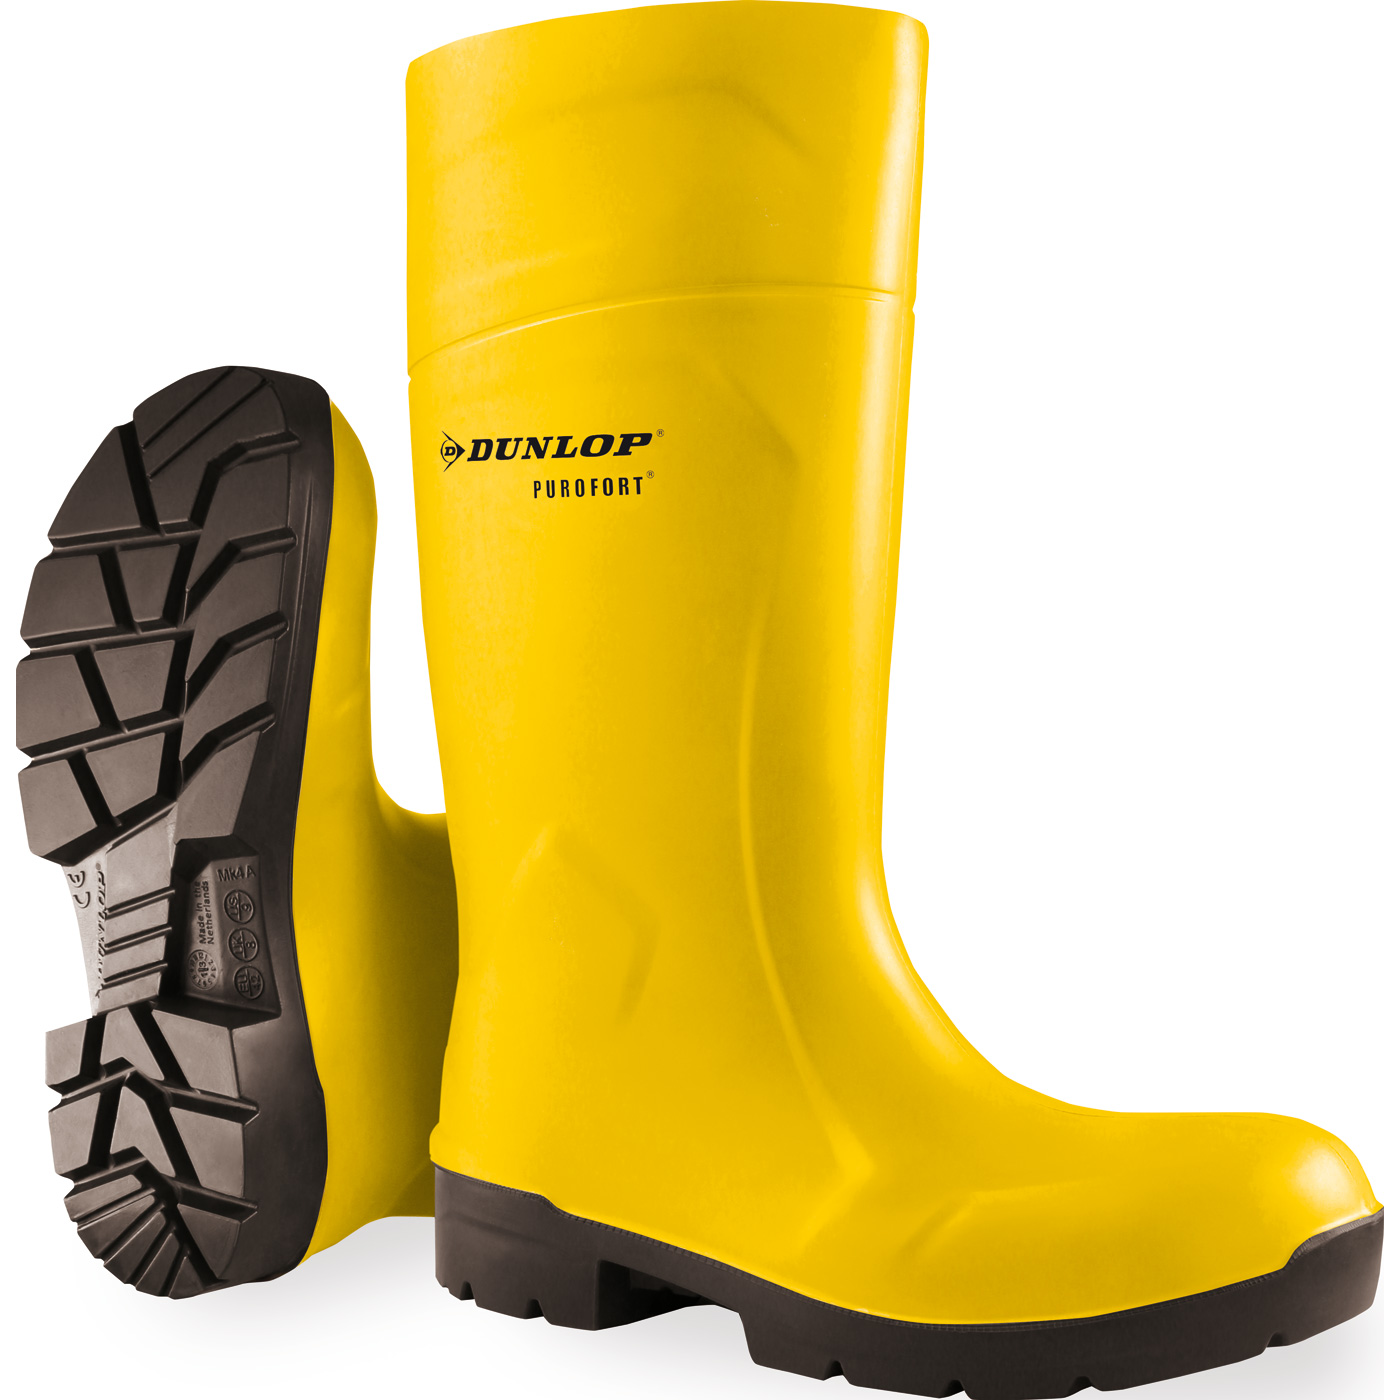 buy popular 0e227 d8af6 ... Dissipative Waterproof Slip-Resistant Rubber BootDunlop® Purofort®  FoodPro MultiGrip Steel Toe Static Dissipative Waterproof Slip-Resistant Rubber  Boot,